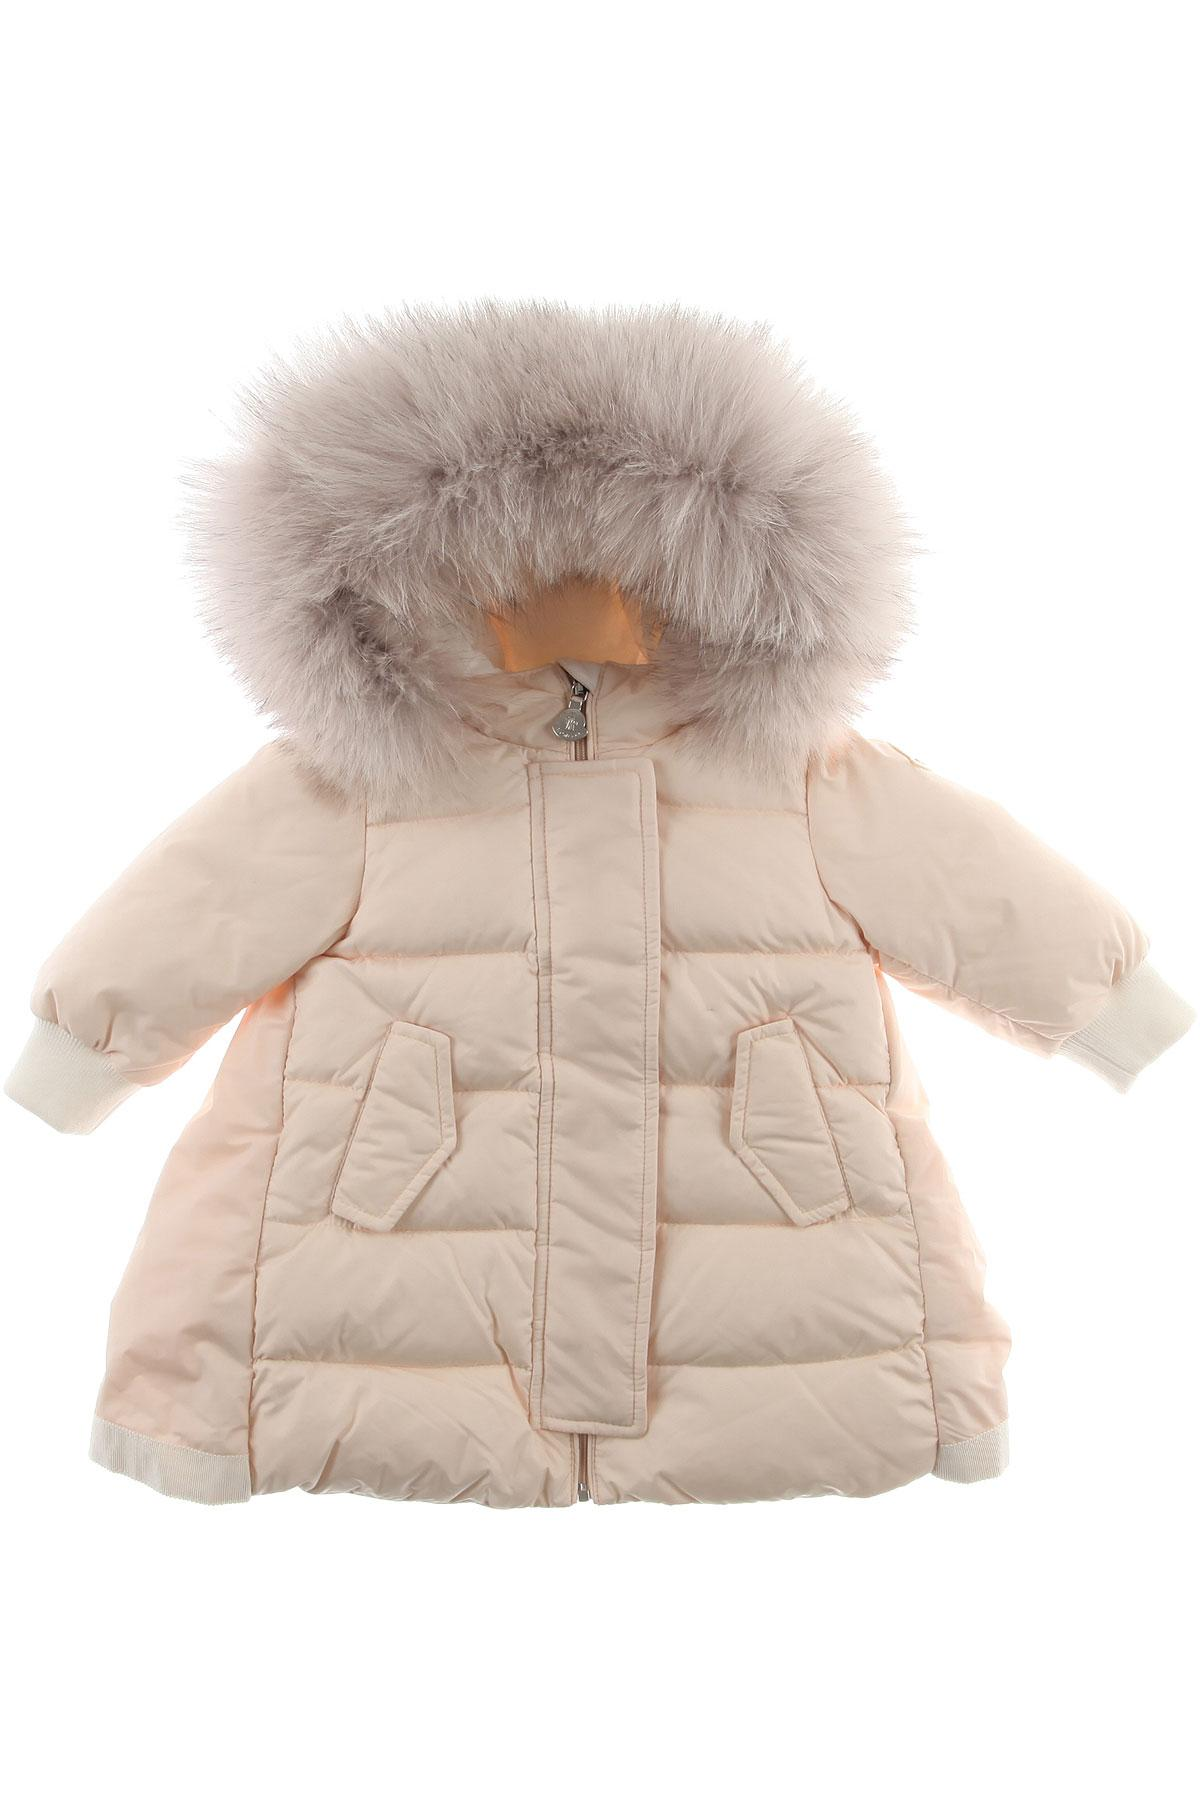 4f1f9455ce82 Girls Down Baby Jacket For Moncler Lyst wEvqXp